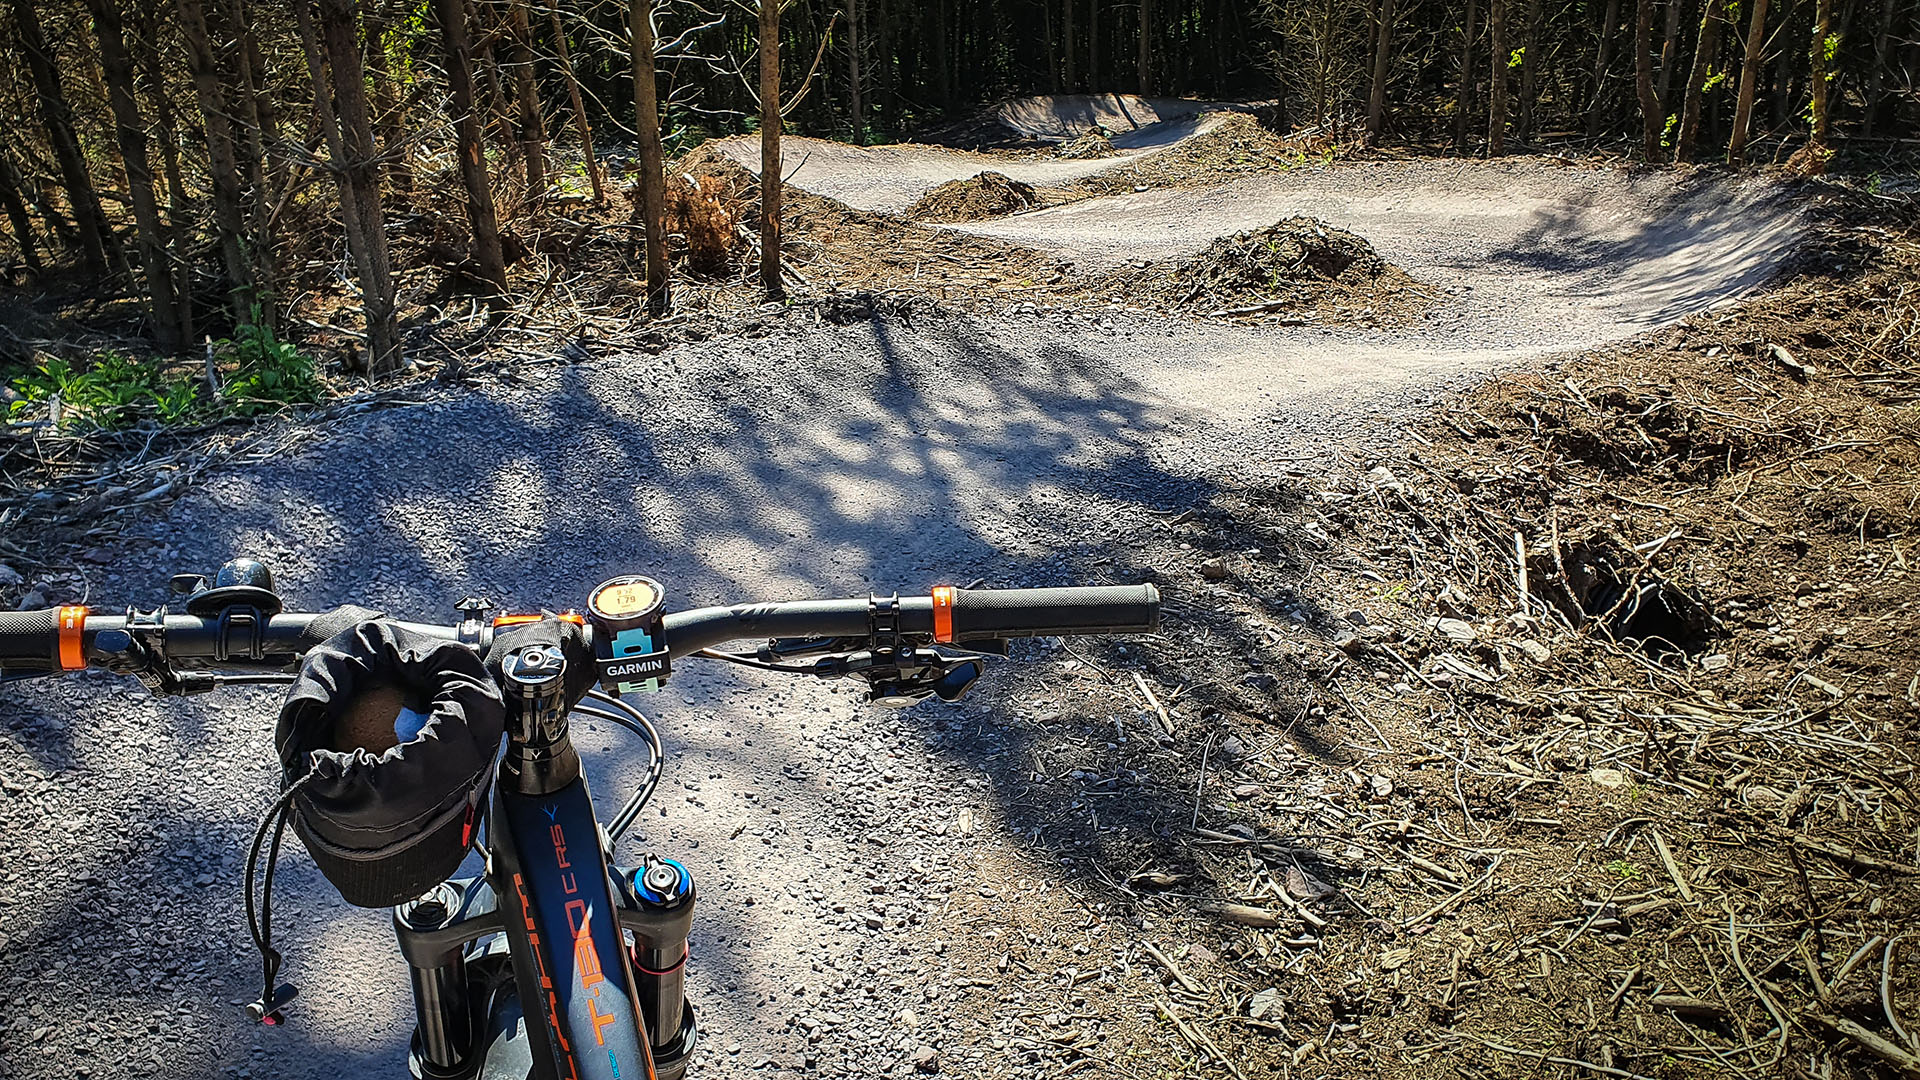 The new Blue Trail recently completed at Cannock Chase has flowing berms which will test your ability to get the right line